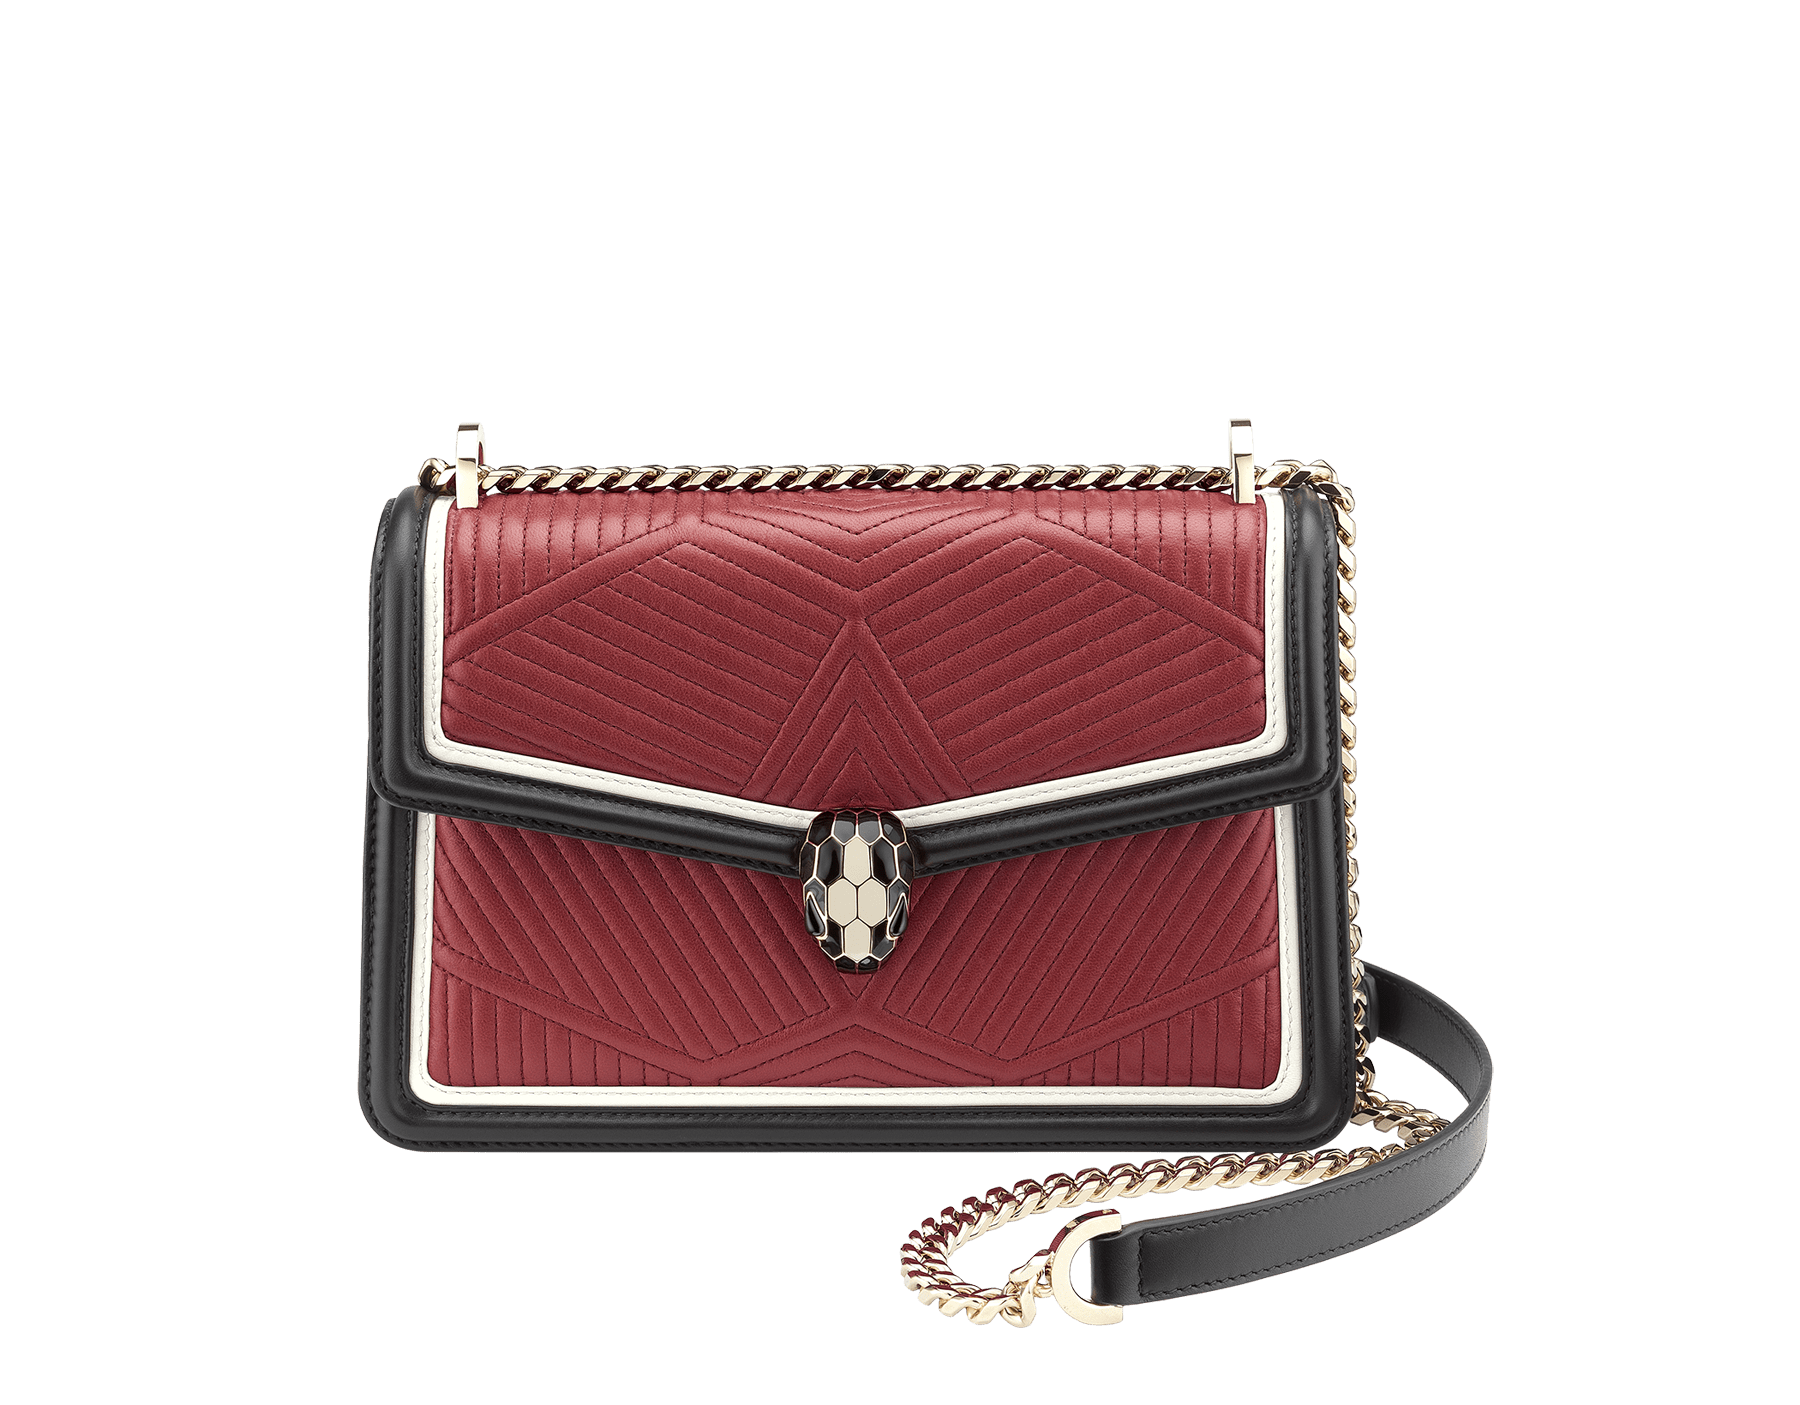 Shoulder bag Serpenti Forever featuring a Framed Quilted motif in roman garnet nappa and black smooth calf leather. Brass light gold plated tempting snake head closure in black and white enamel, with eyes in black onyx. 286628 image 2